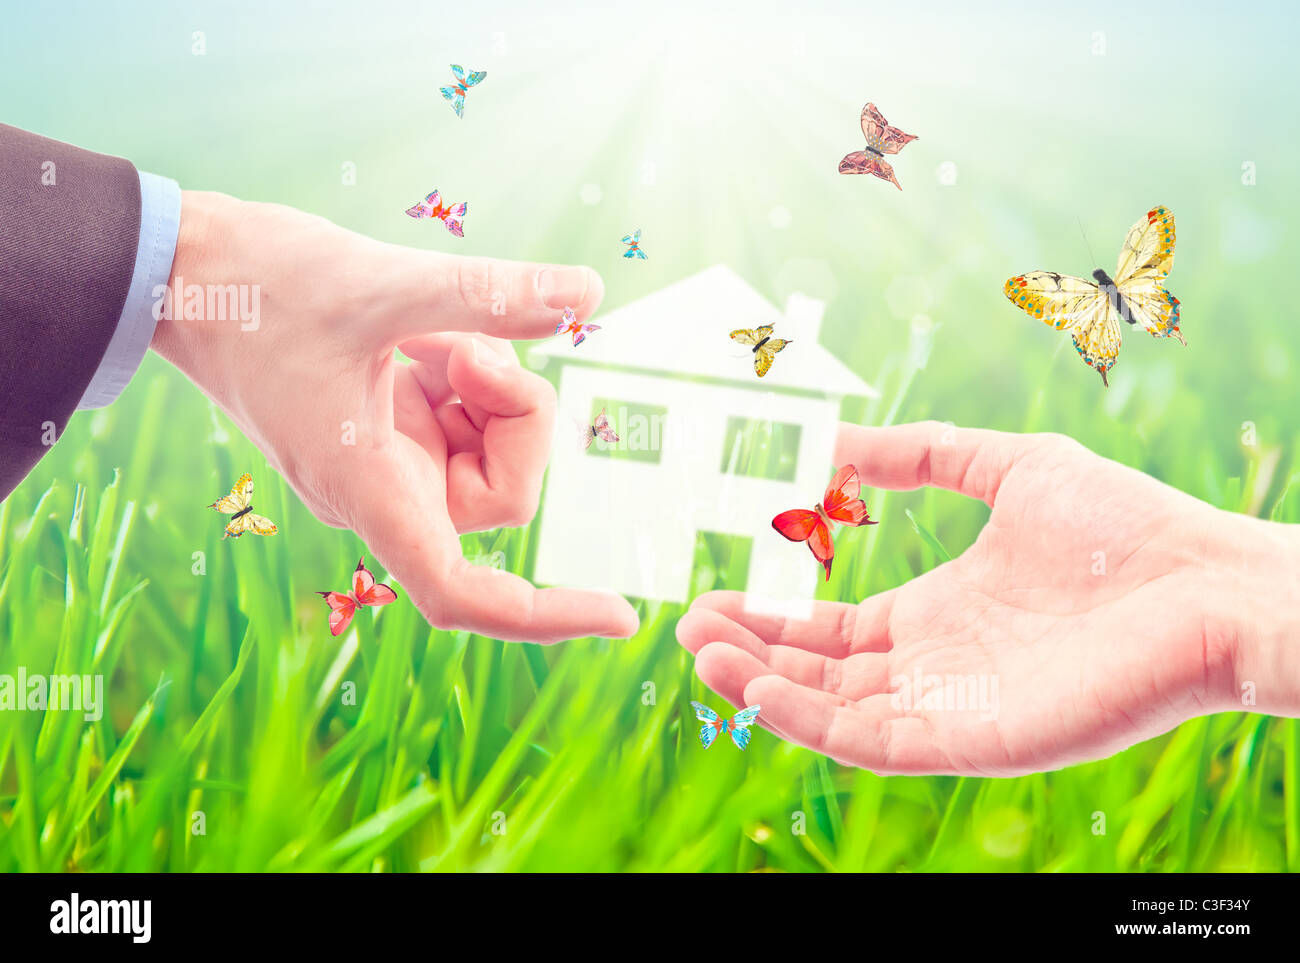 The House in the hands against the blue sky as a symbol of the real estate business. - Stock Image